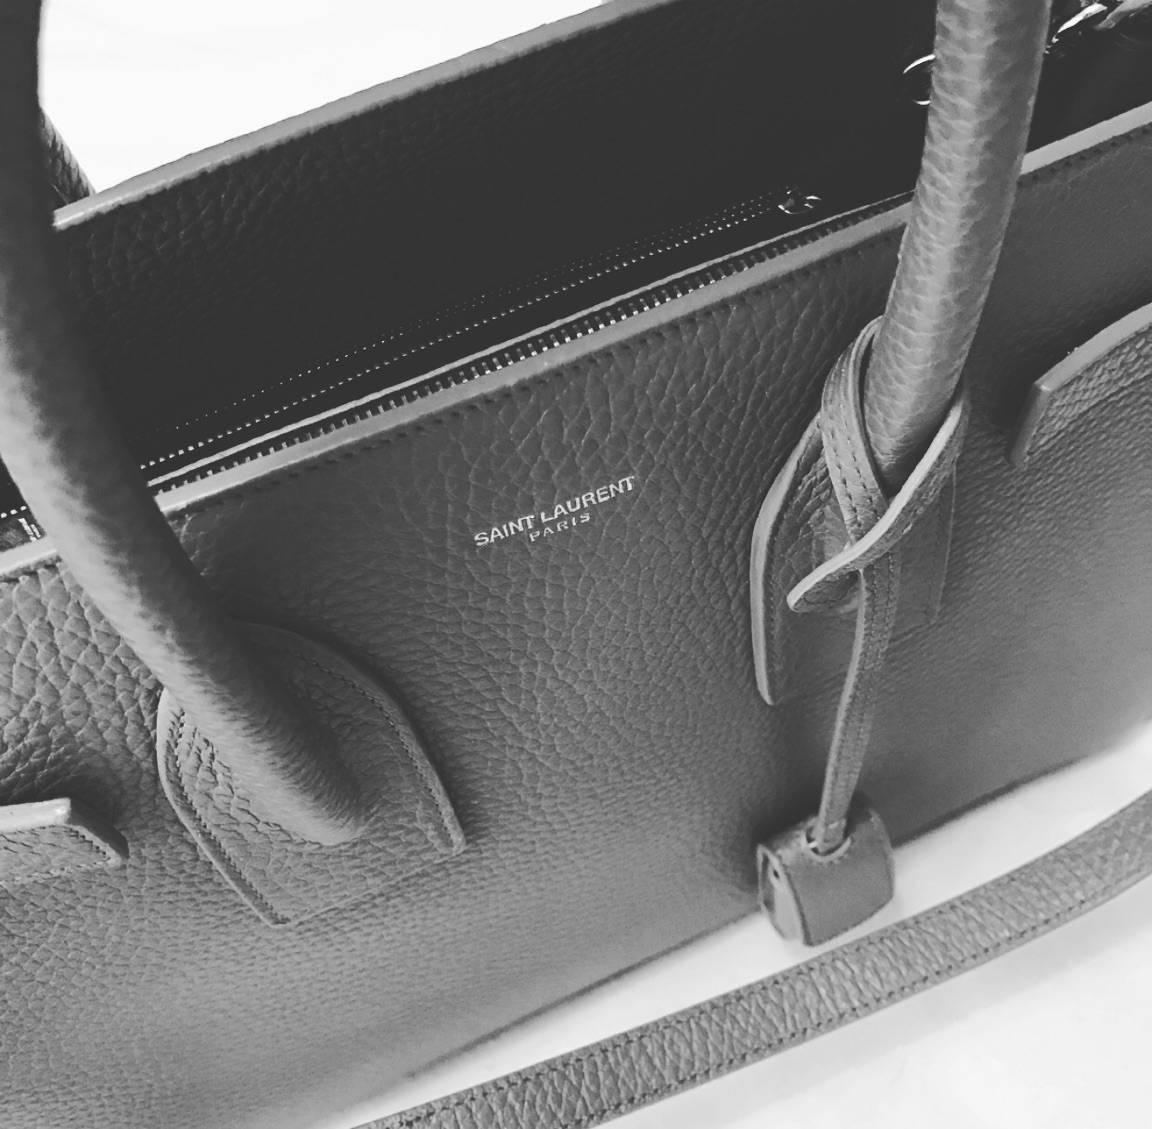 Saint Laurent Classic Sac de Jour in Fog Grained Leather